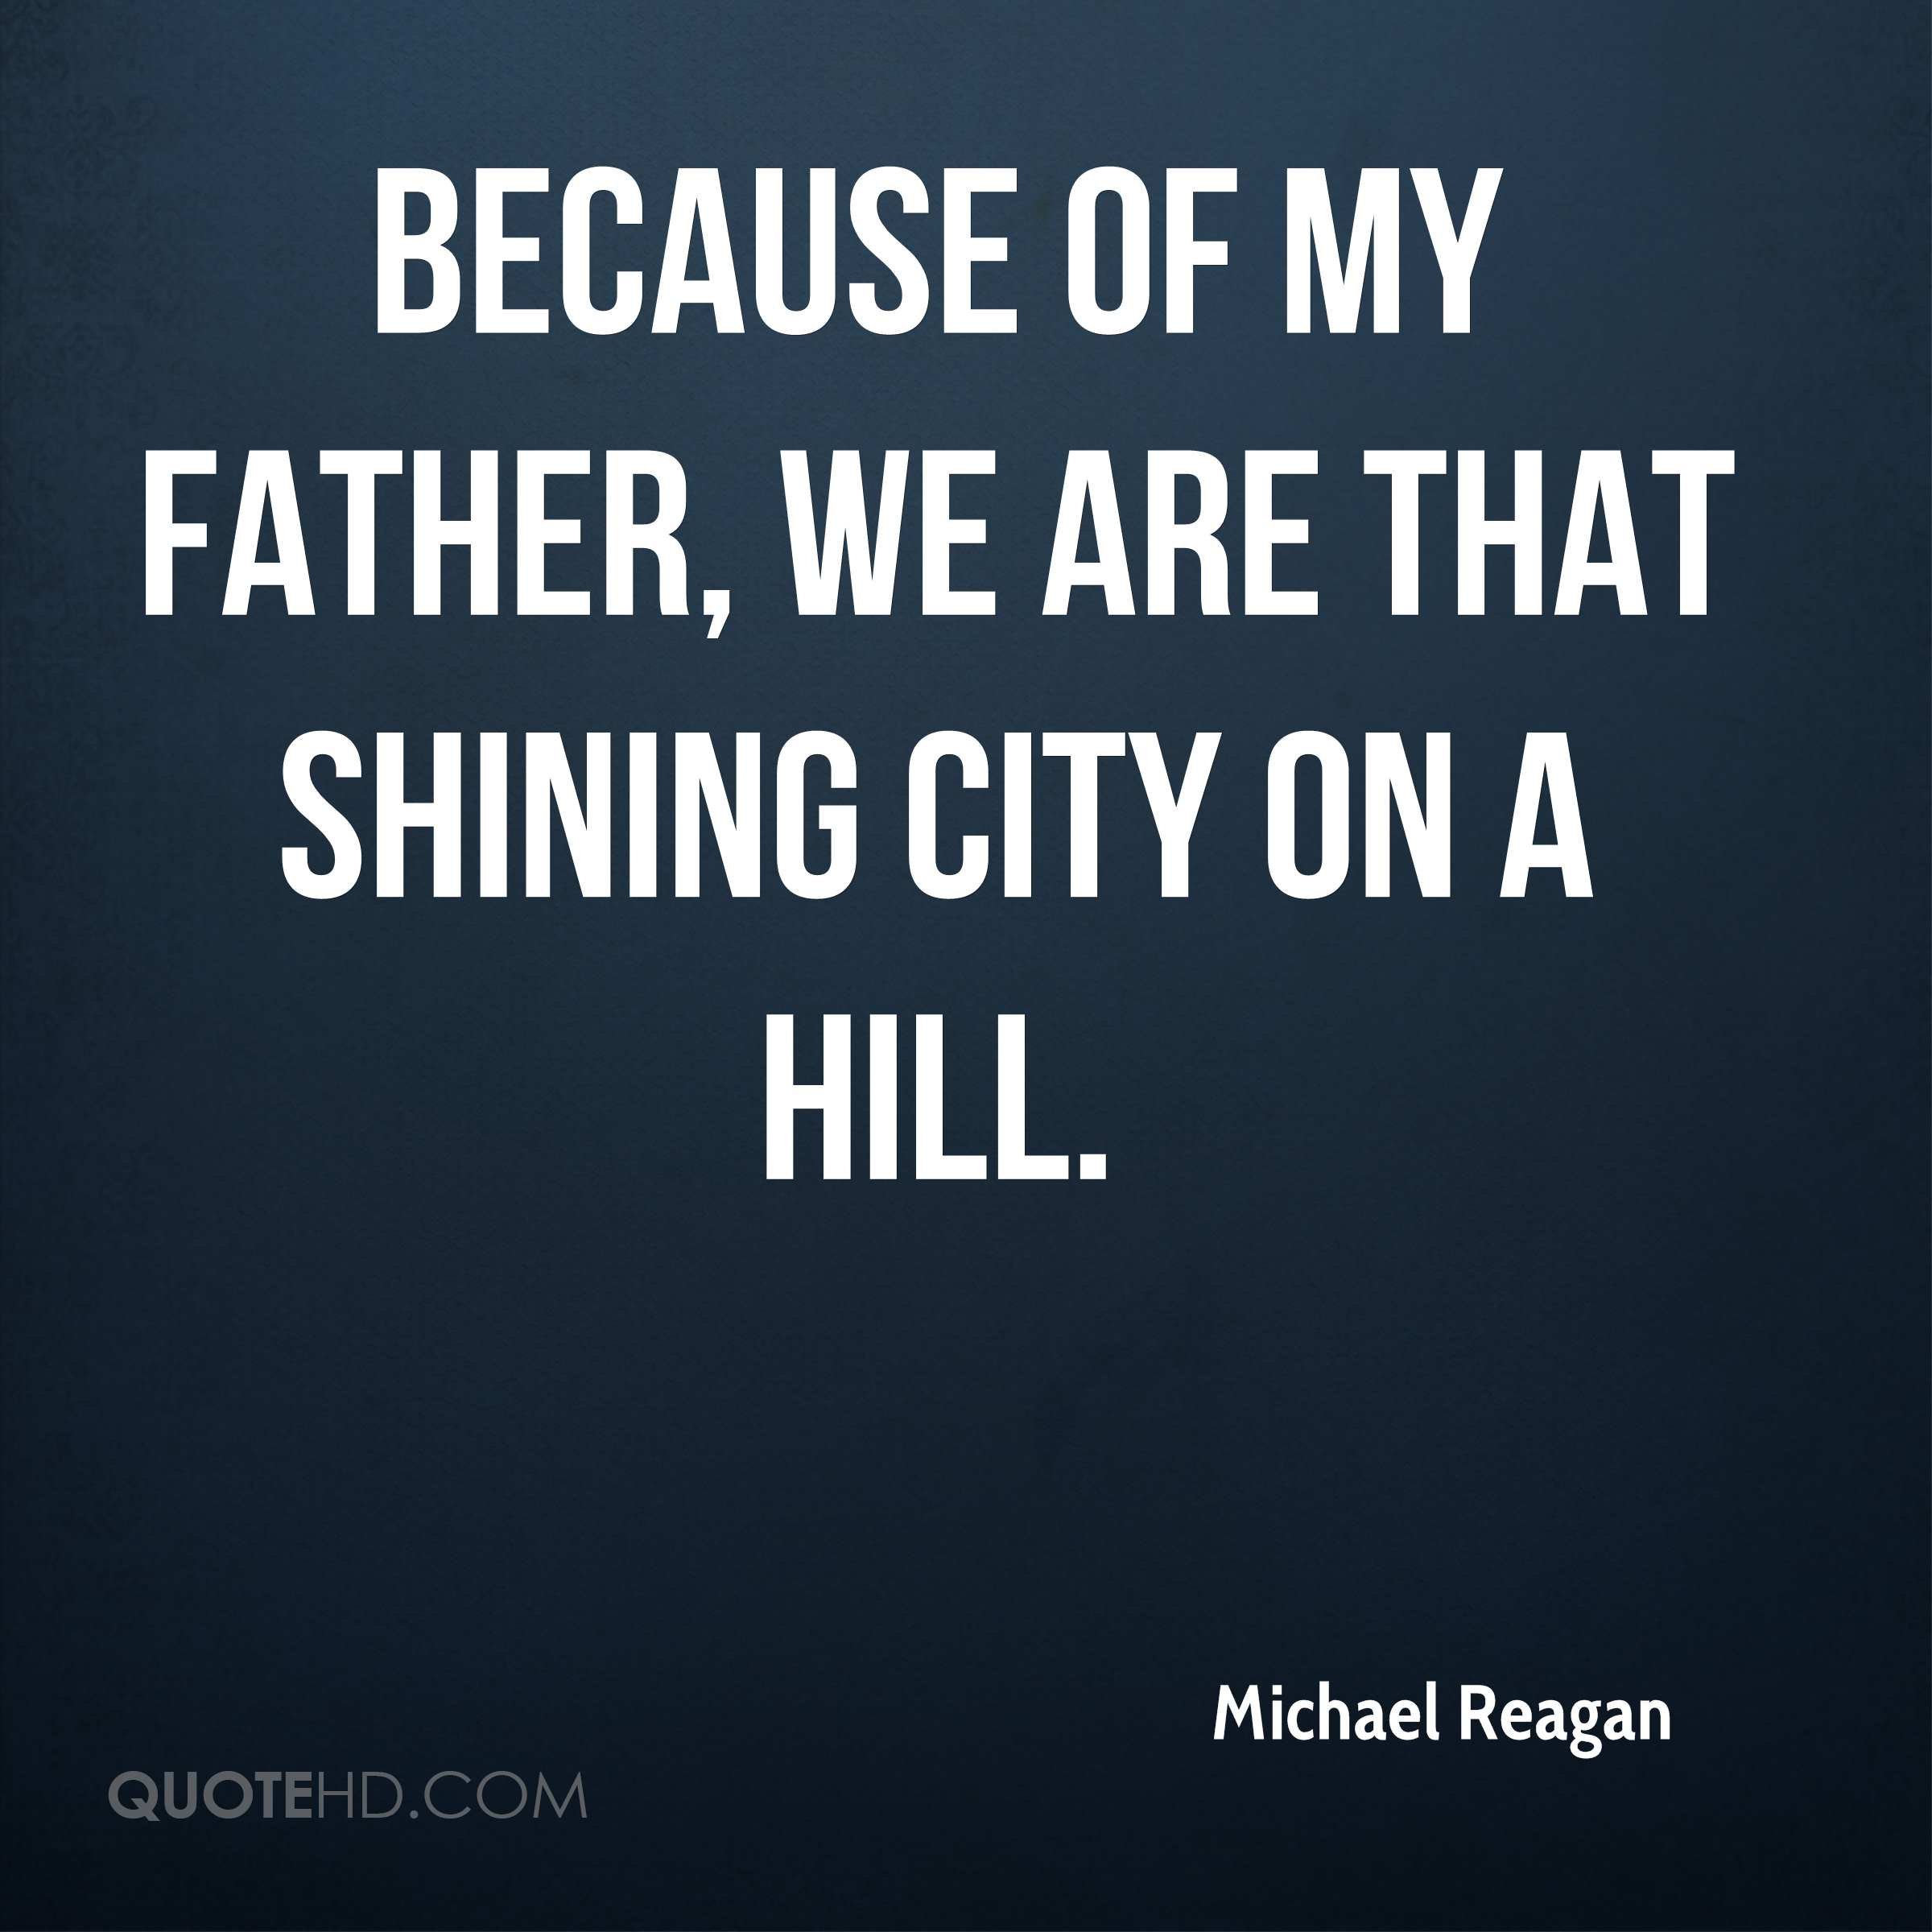 Because of my father, we are that Shining City on a Hill.